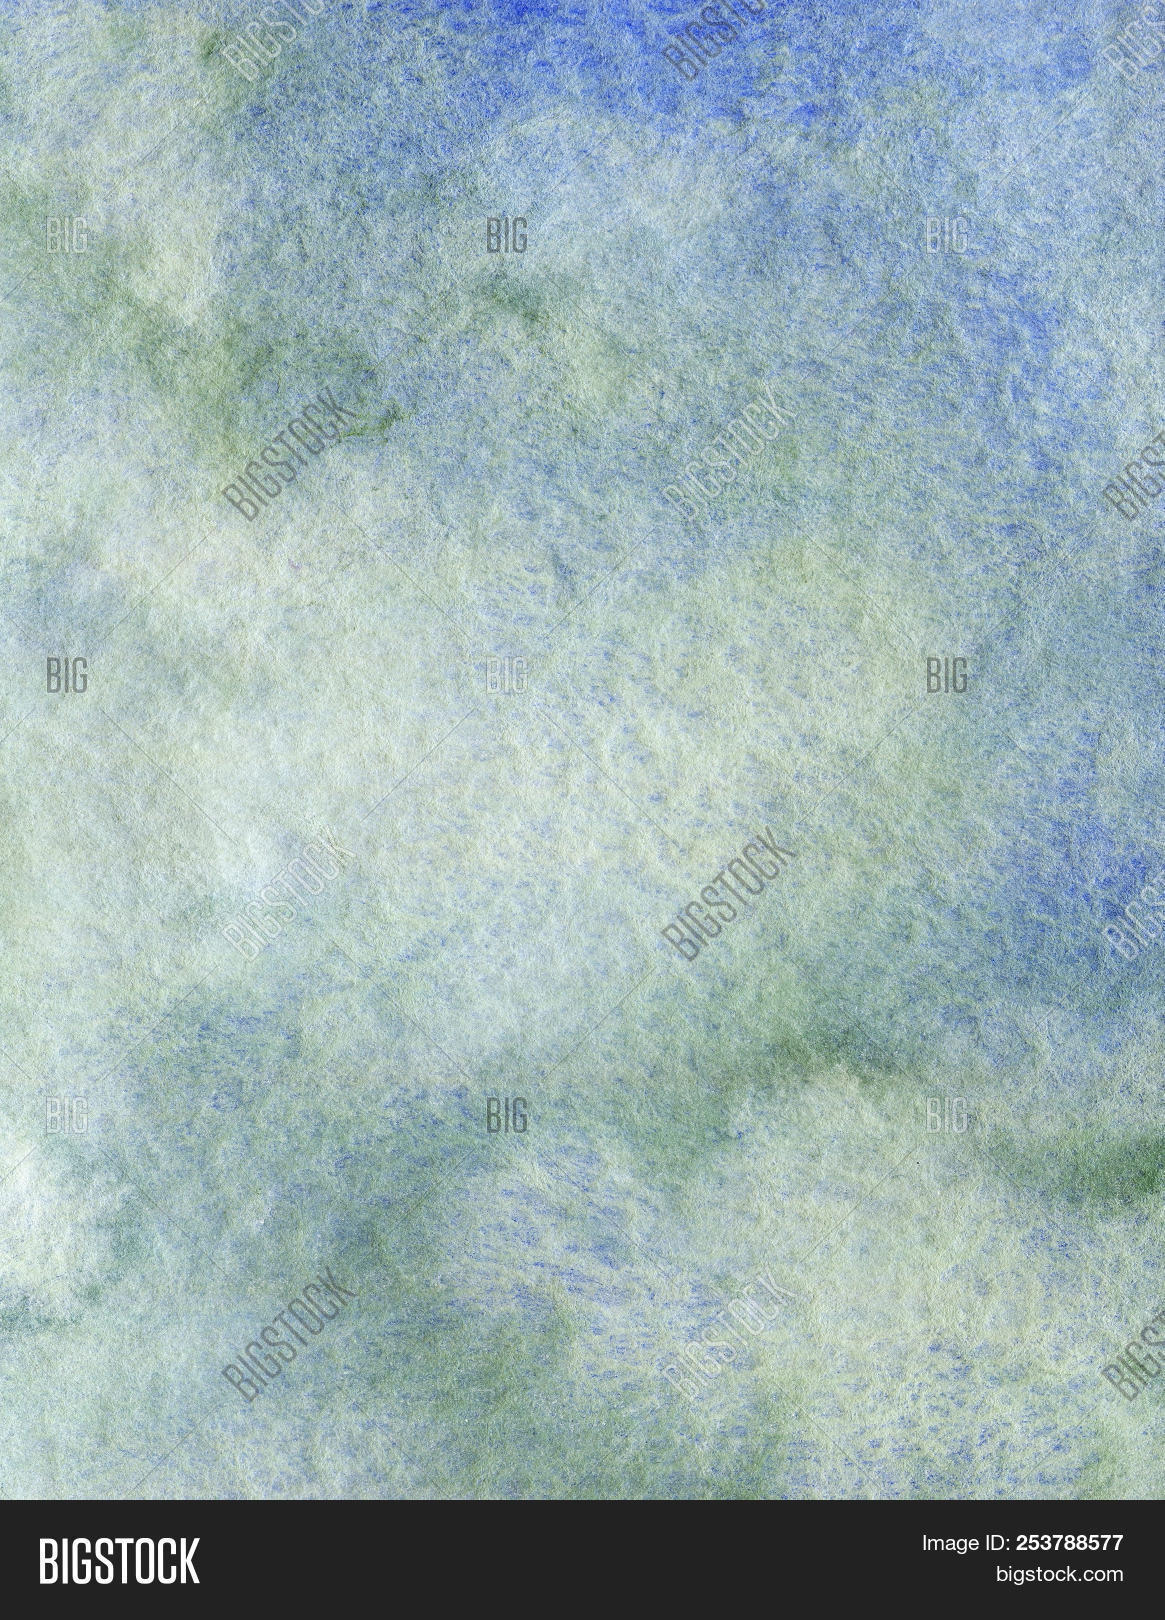 Blue And Gray Grant Background Texture Watercolor Hand Drawn Ilration Shades Of